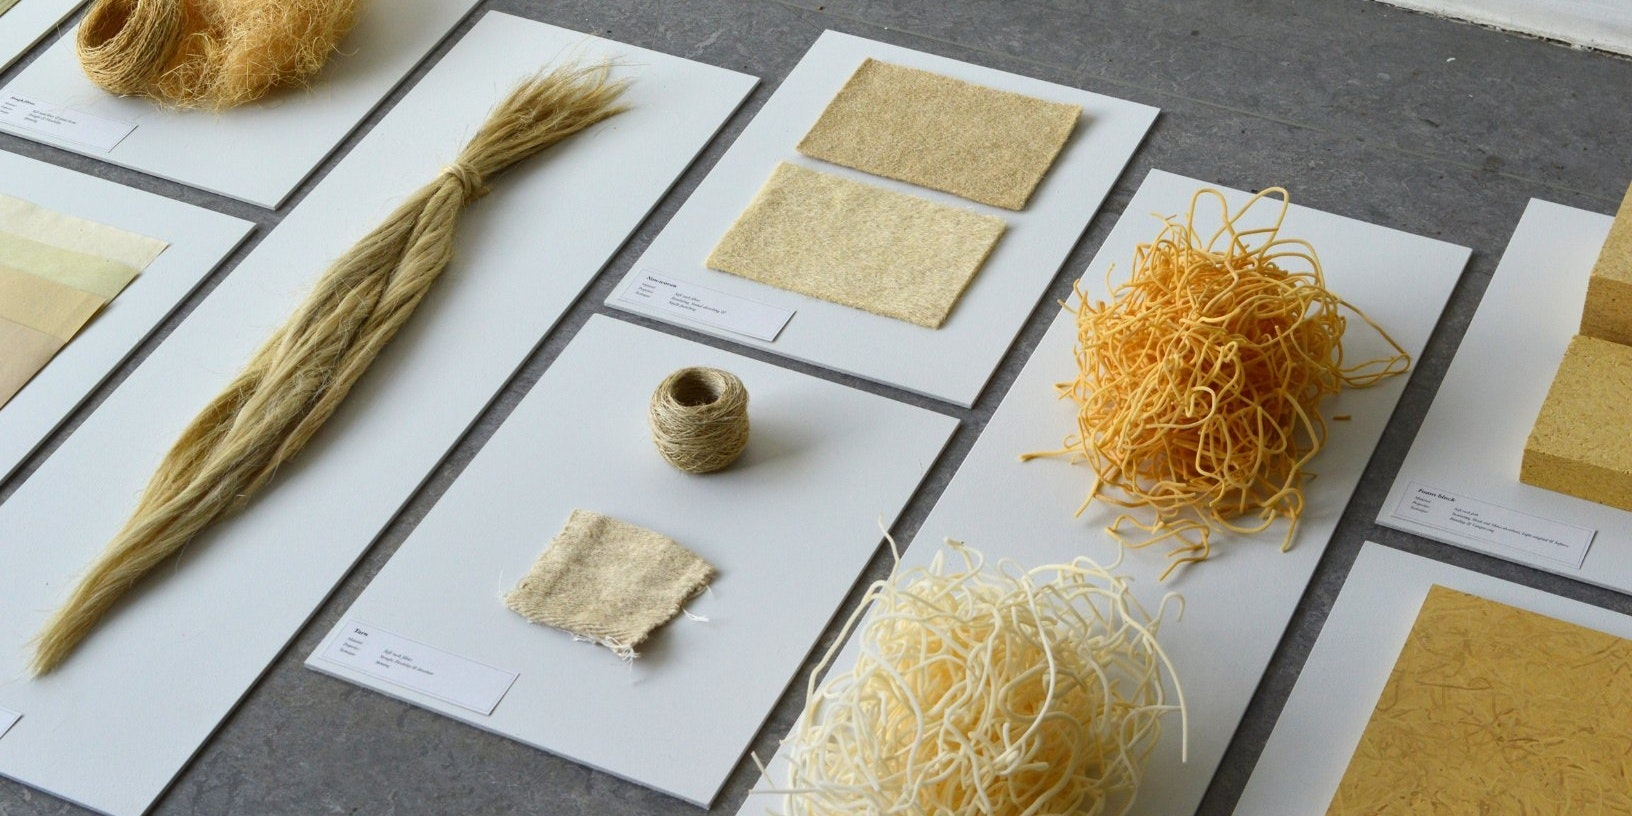 biodegradable plant-based packaging materials